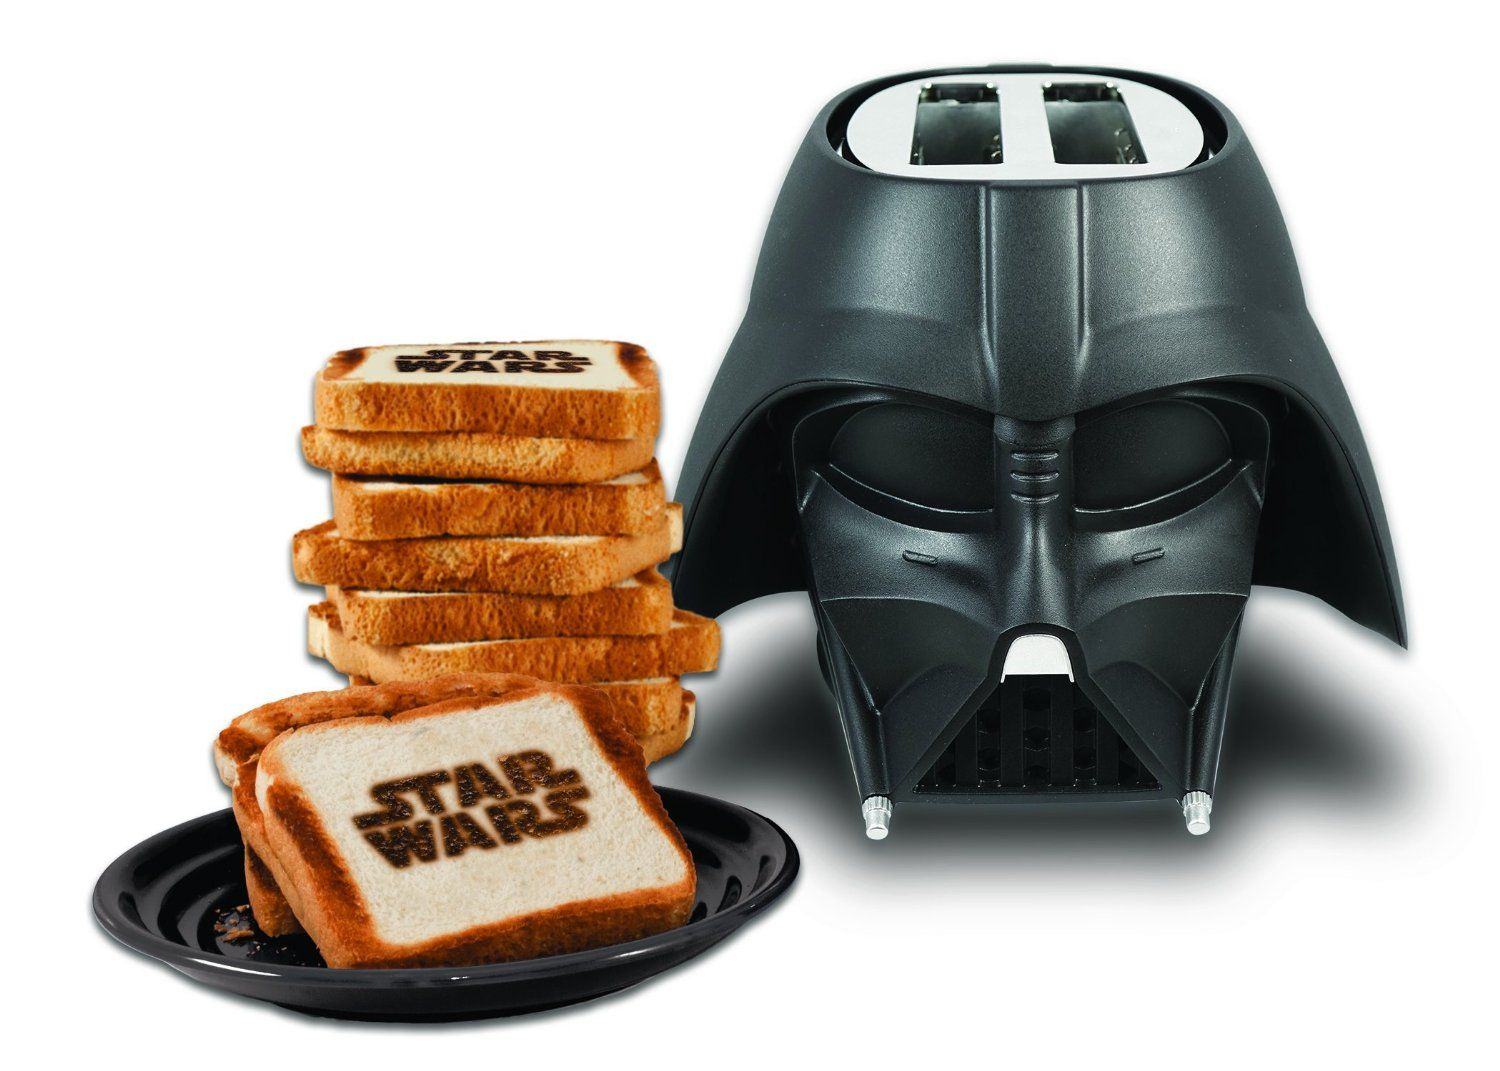 Star Wars Küchenutensilien Compact Star Wars Darth Vader Toaster Kichen Gadgets Darth